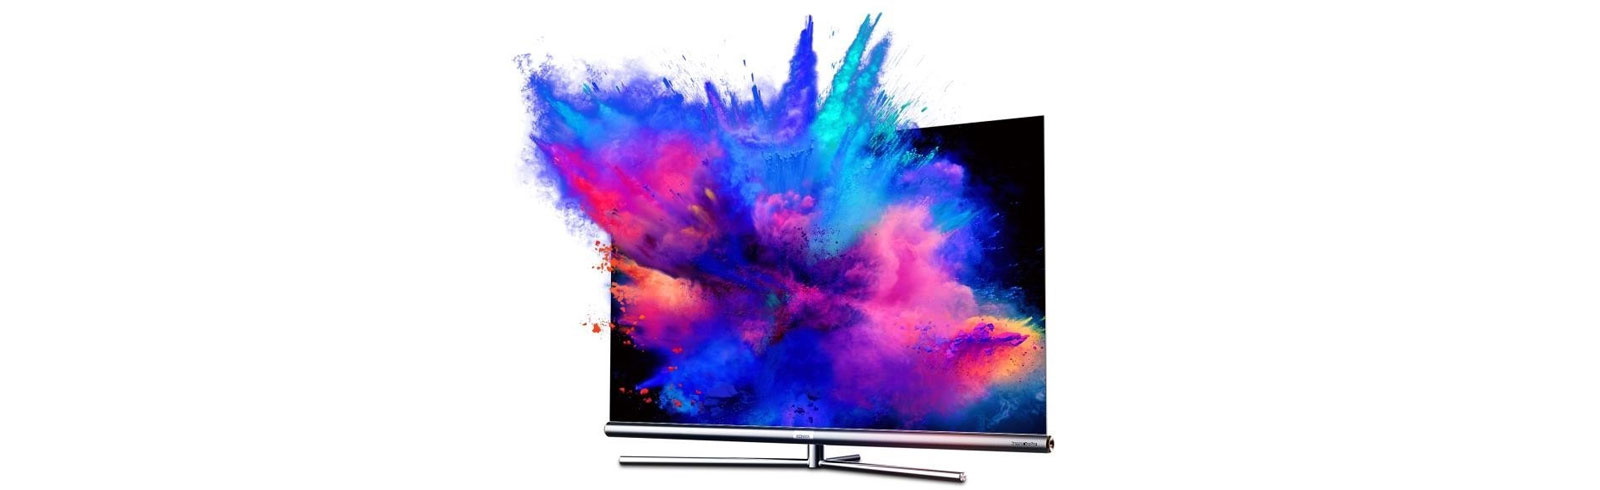 Konka announces the H3 and U5 LED TV, the Q7 QLED TV and the X11 OLED TV series